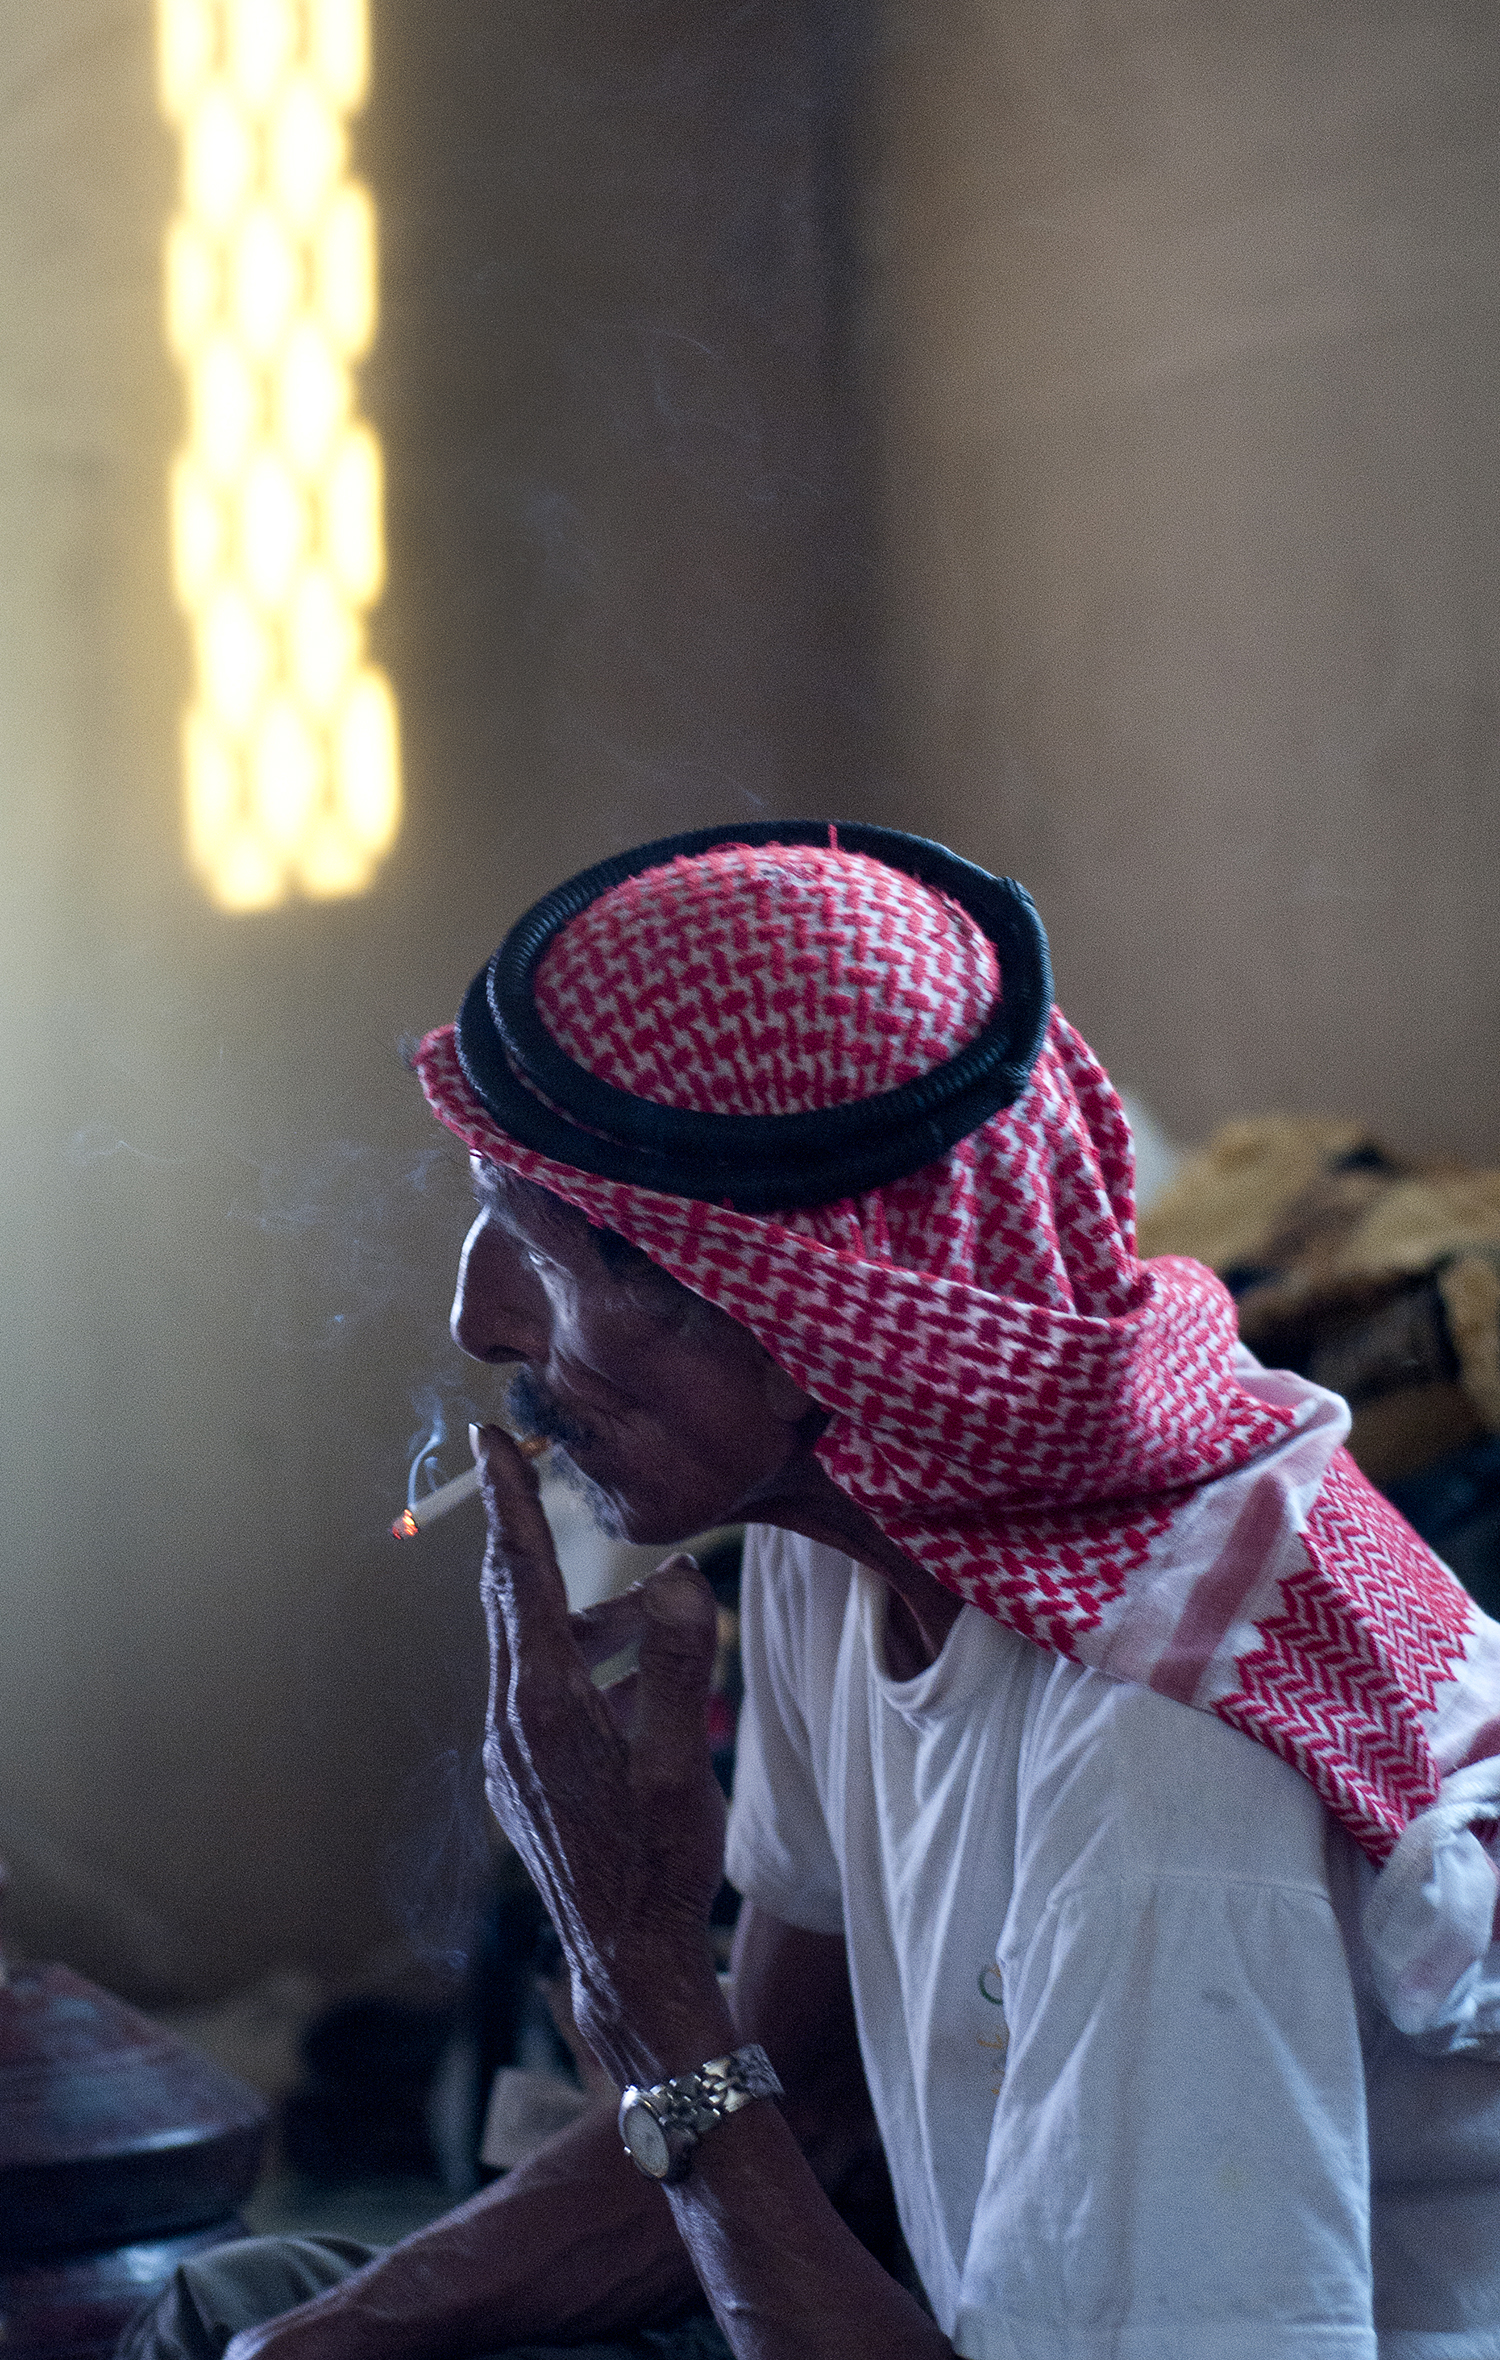 Bani Murra tribal elder Abu Hussain smokes a cigarette in his home in the outskirts of Amman. The tribe has broader roots in the Arabian Penninsula, where larger groups of Bani Murra began migrating in the early 1800s to settle throughout Jordan, Israel, Syria, Saudi Arabia and Egypt. July 2013.